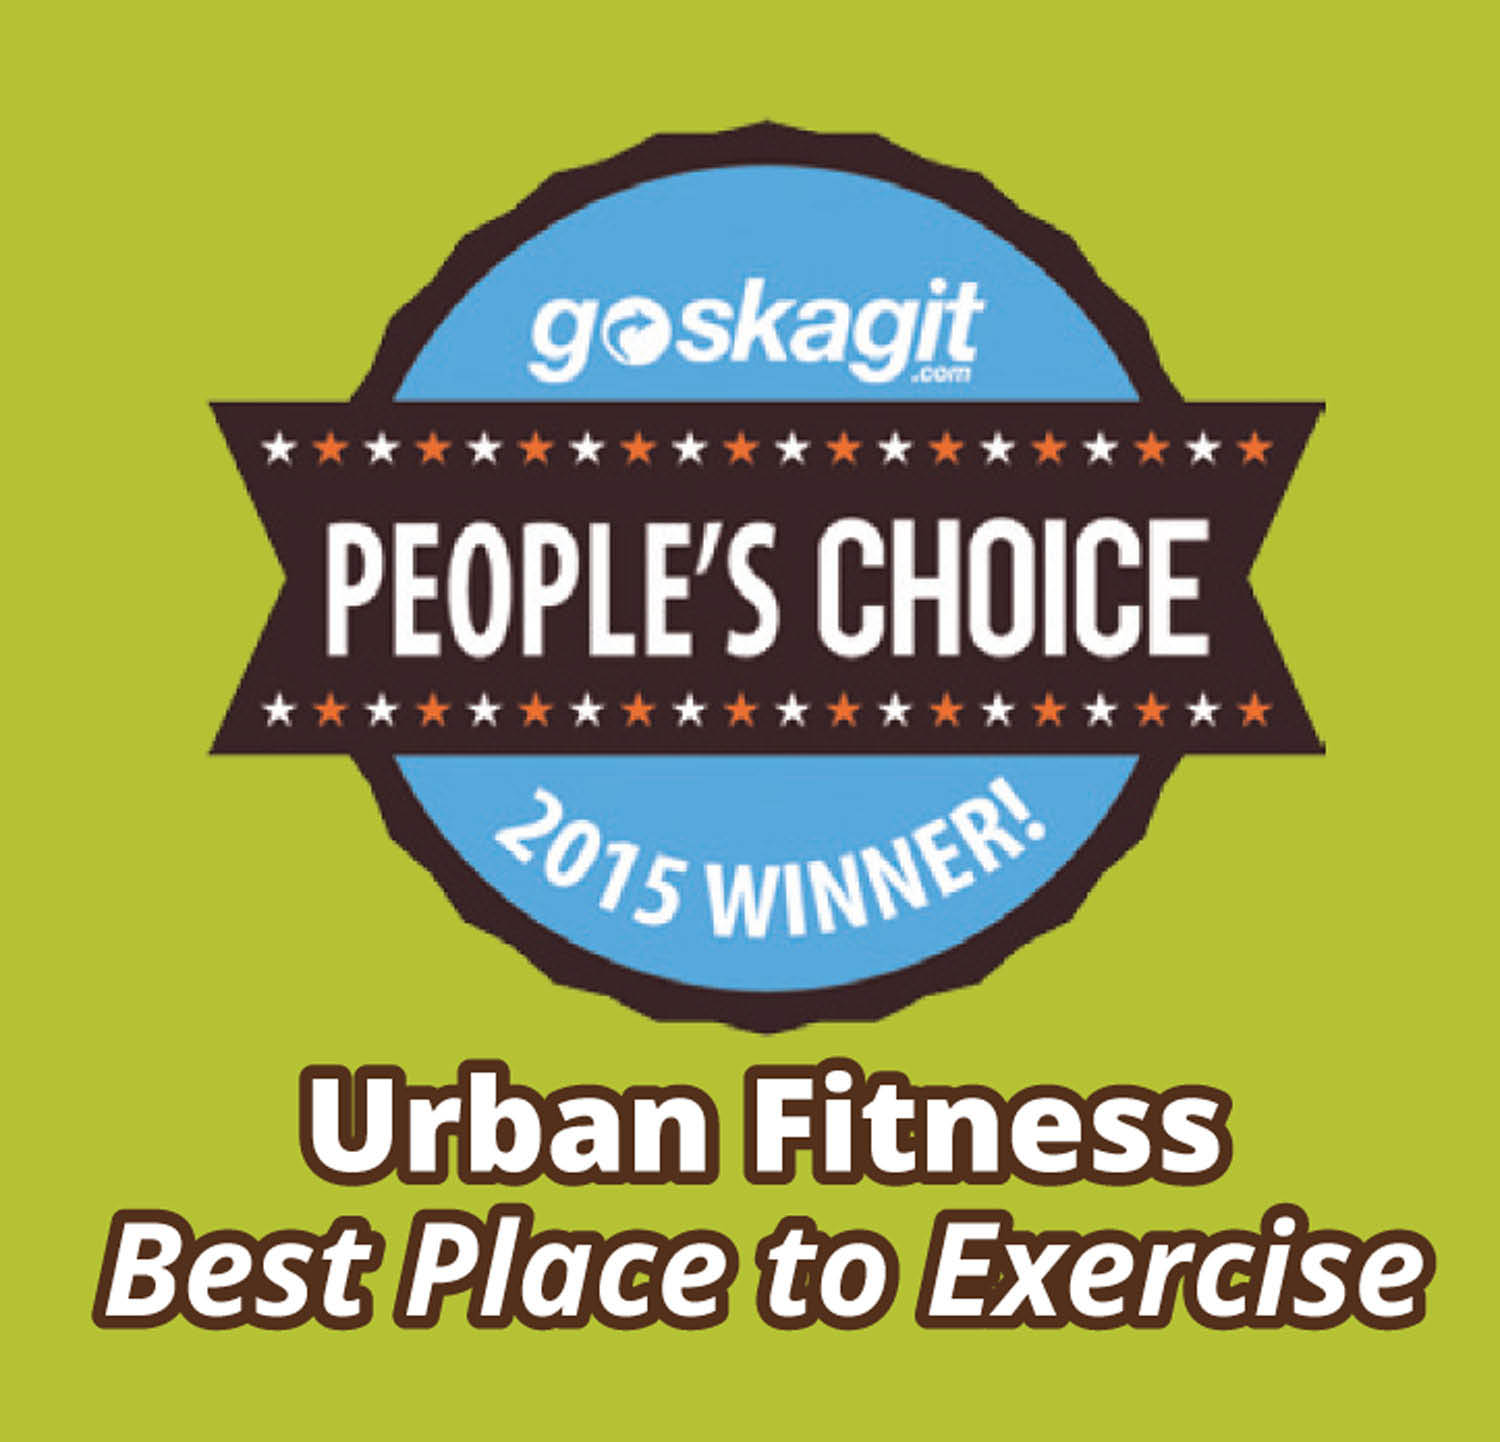 Go Skagit People's Choice Award voted Urban Fitness as the2015 Winner for Best Place to Exercise in Mount Vernon